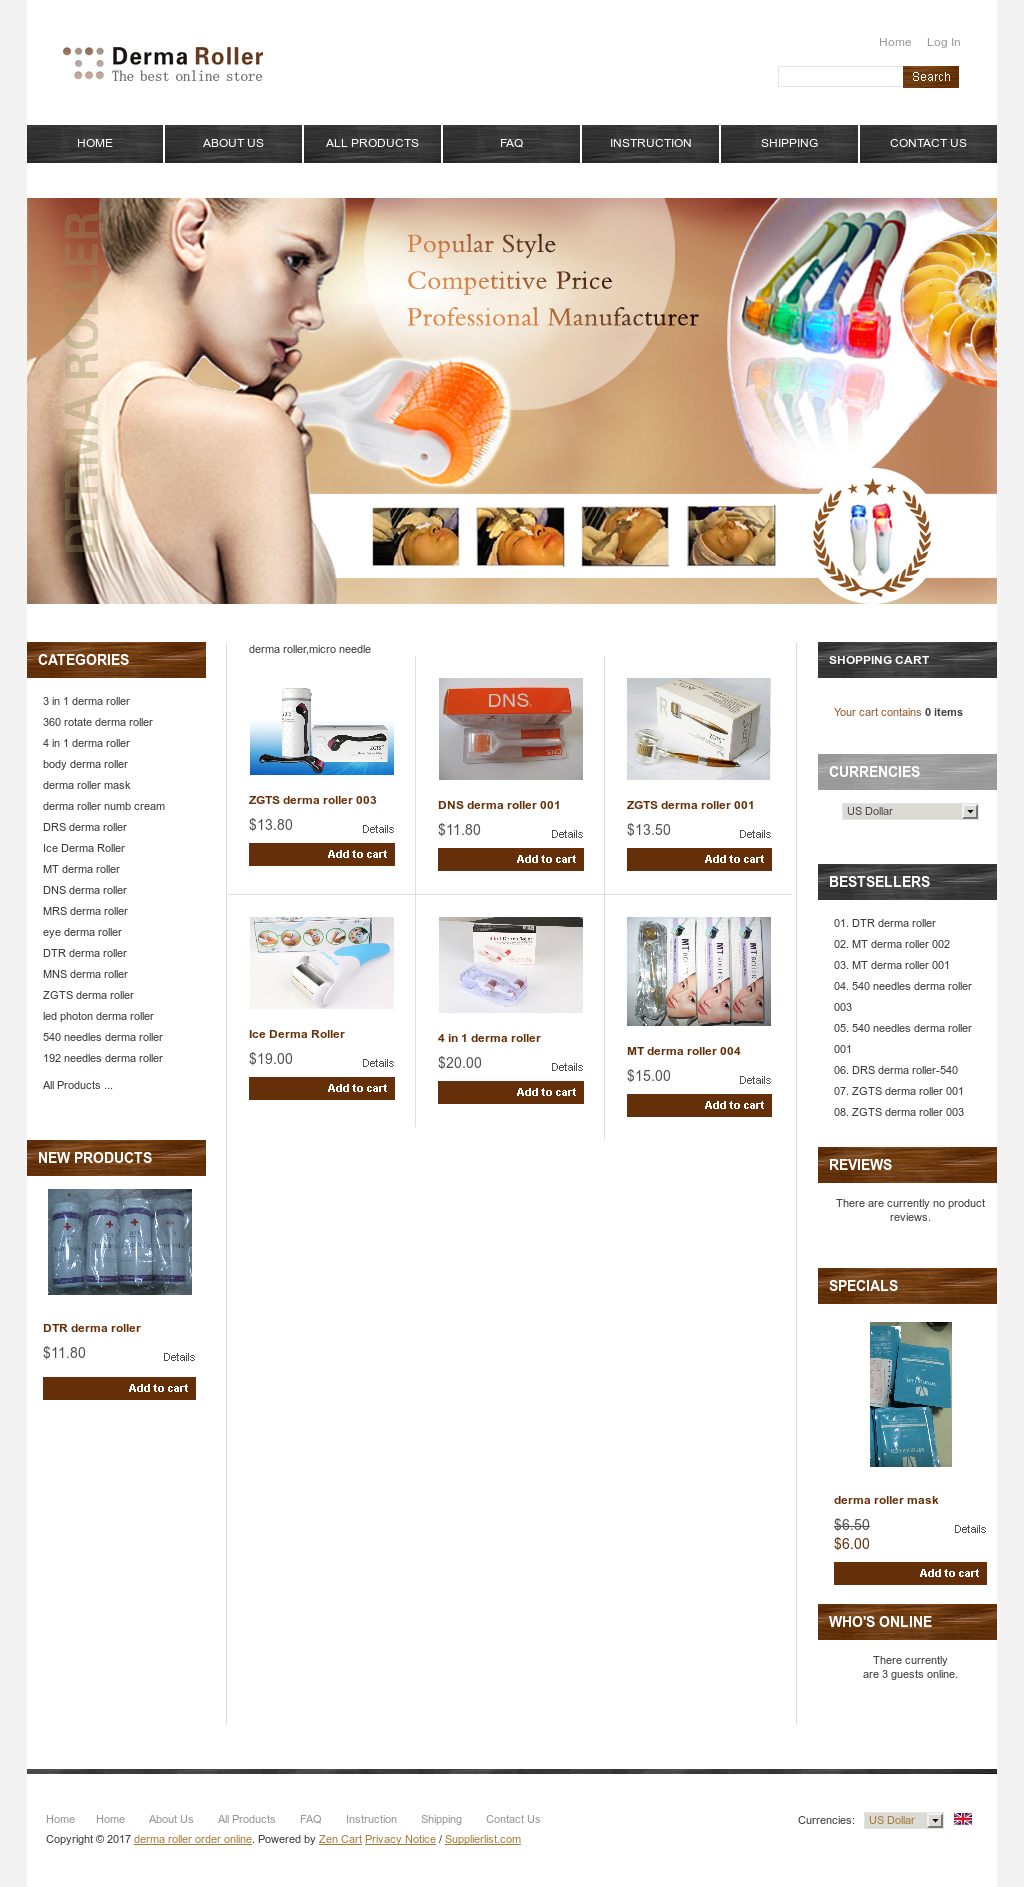 Derma Roller Order Online Competitors Revenue And Employees Owler